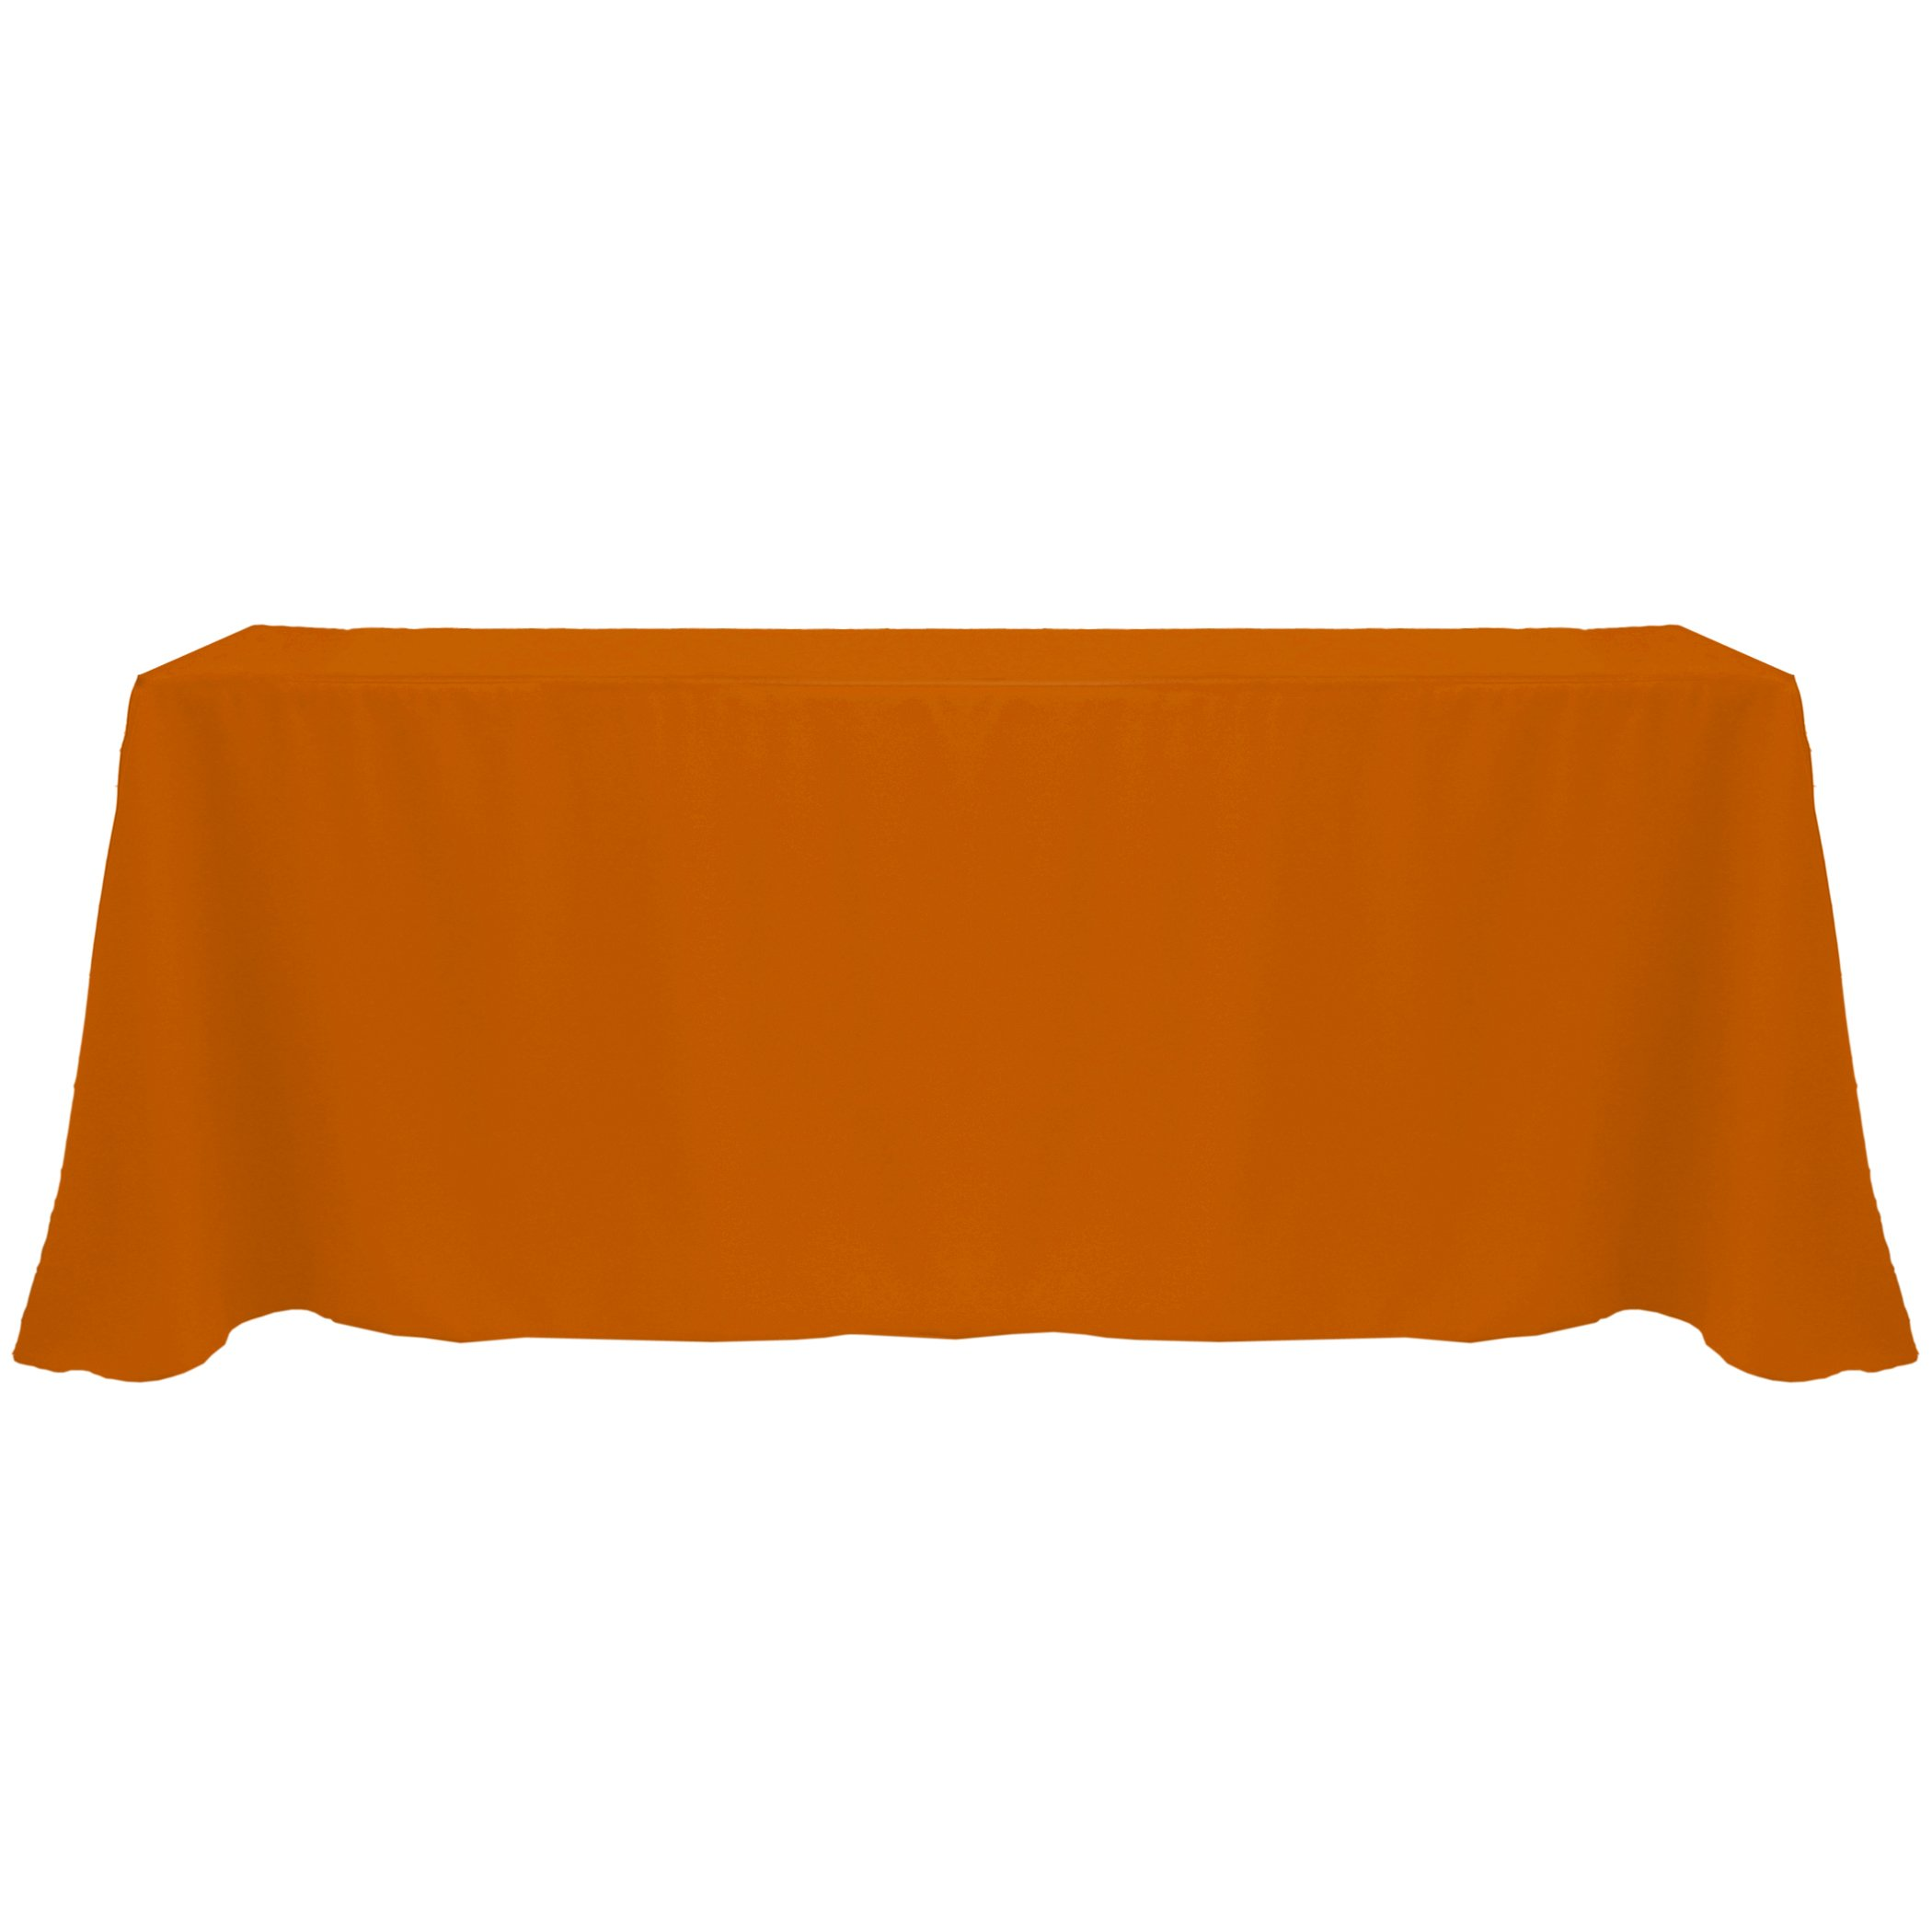 Ultimate Textile (20 Pack) 90 x 132-Inch Rectangular Polyester Linen Tablecloth with Rounded Corners - for Wedding, Restaurant or Banquet use, Burnt Orange by Ultimate Textile (Image #2)